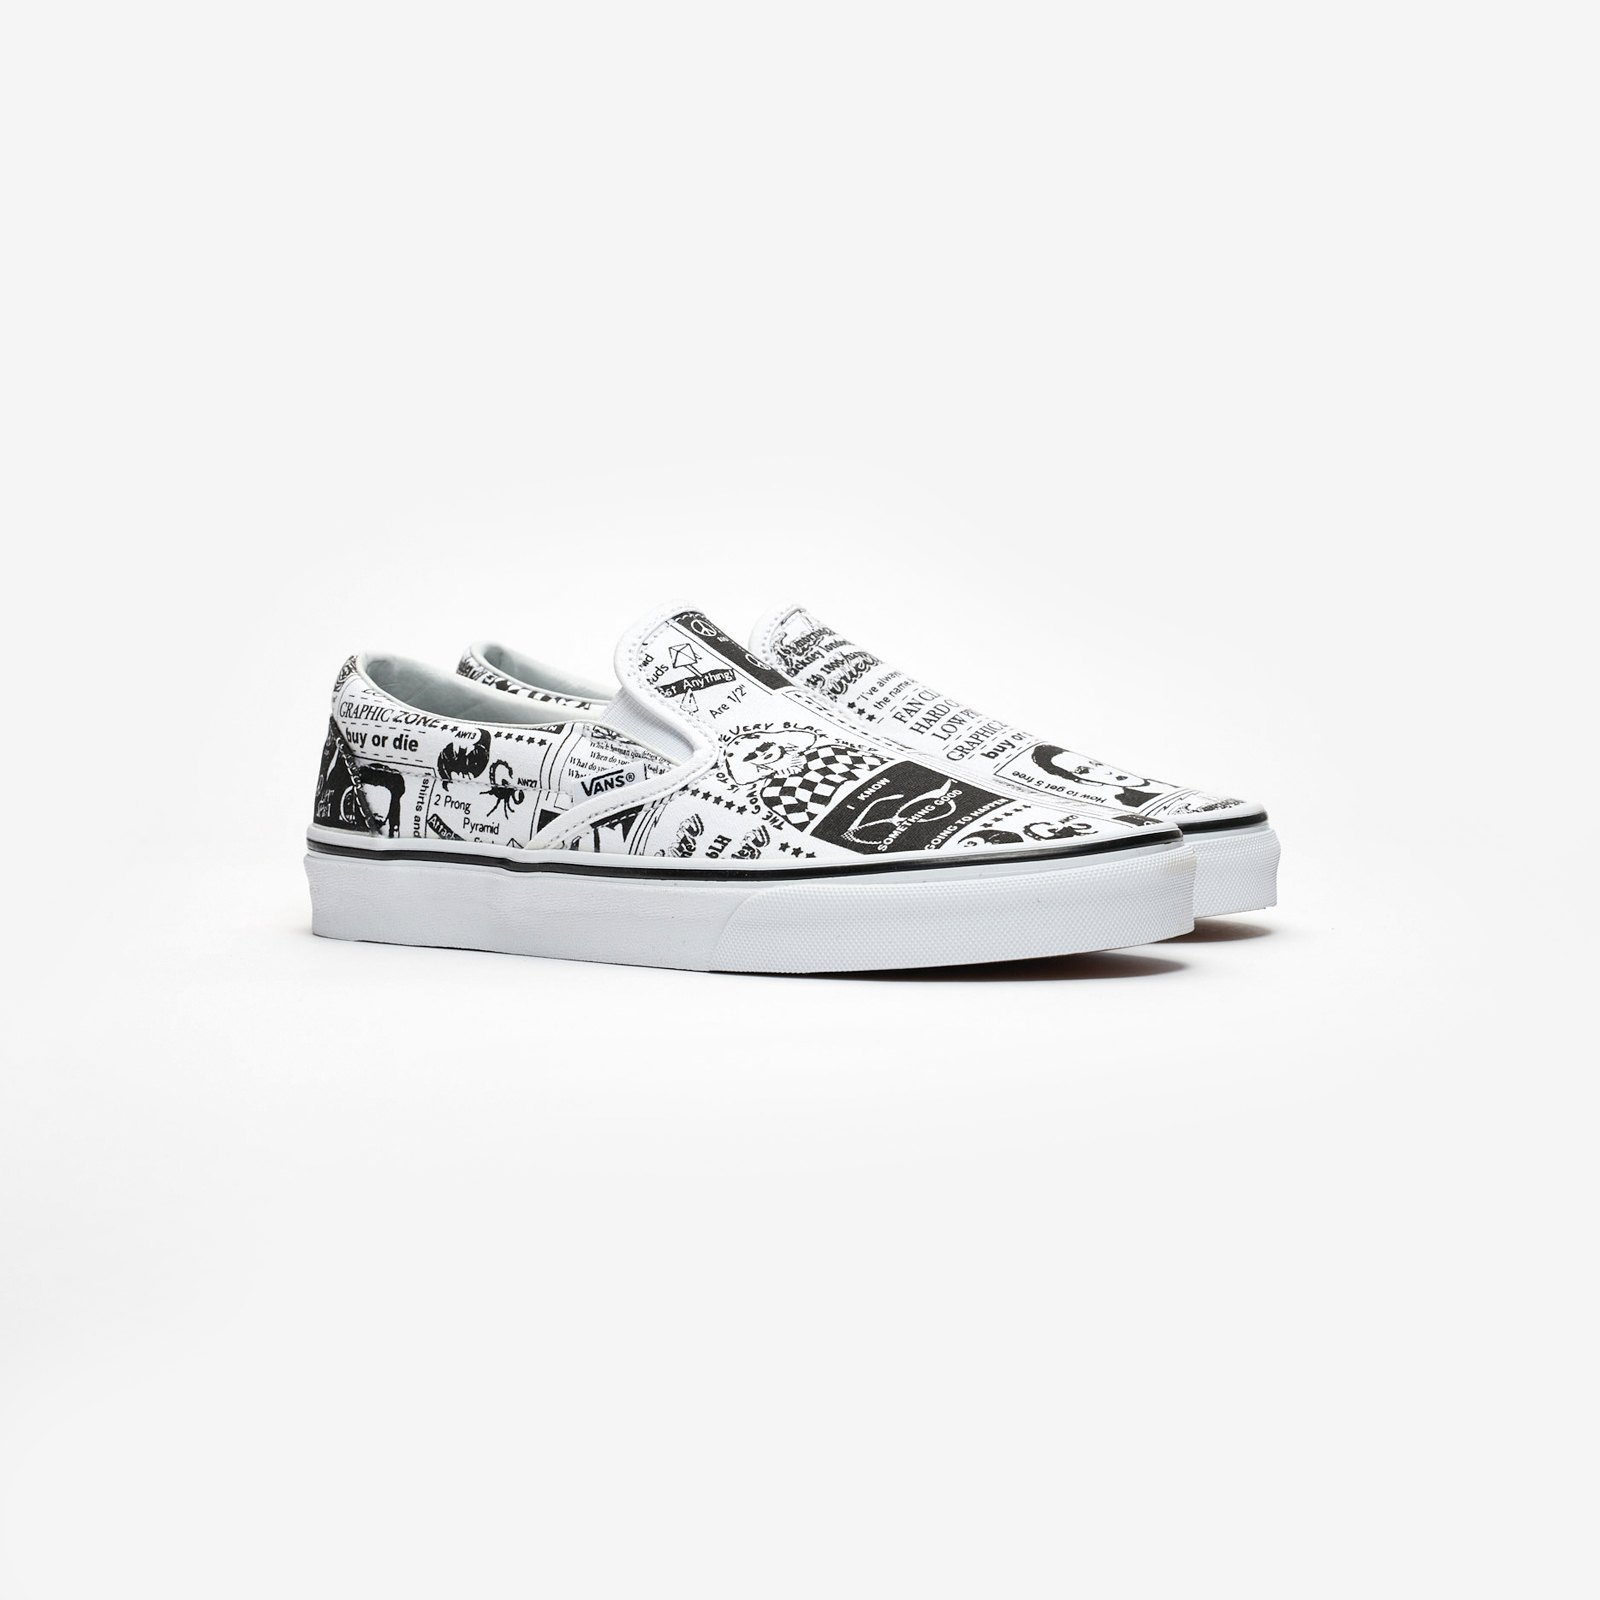 f539edc2dd9db7 Vans Classic Slip-On x Ashley Williams - Vn0a38f7sfq ...